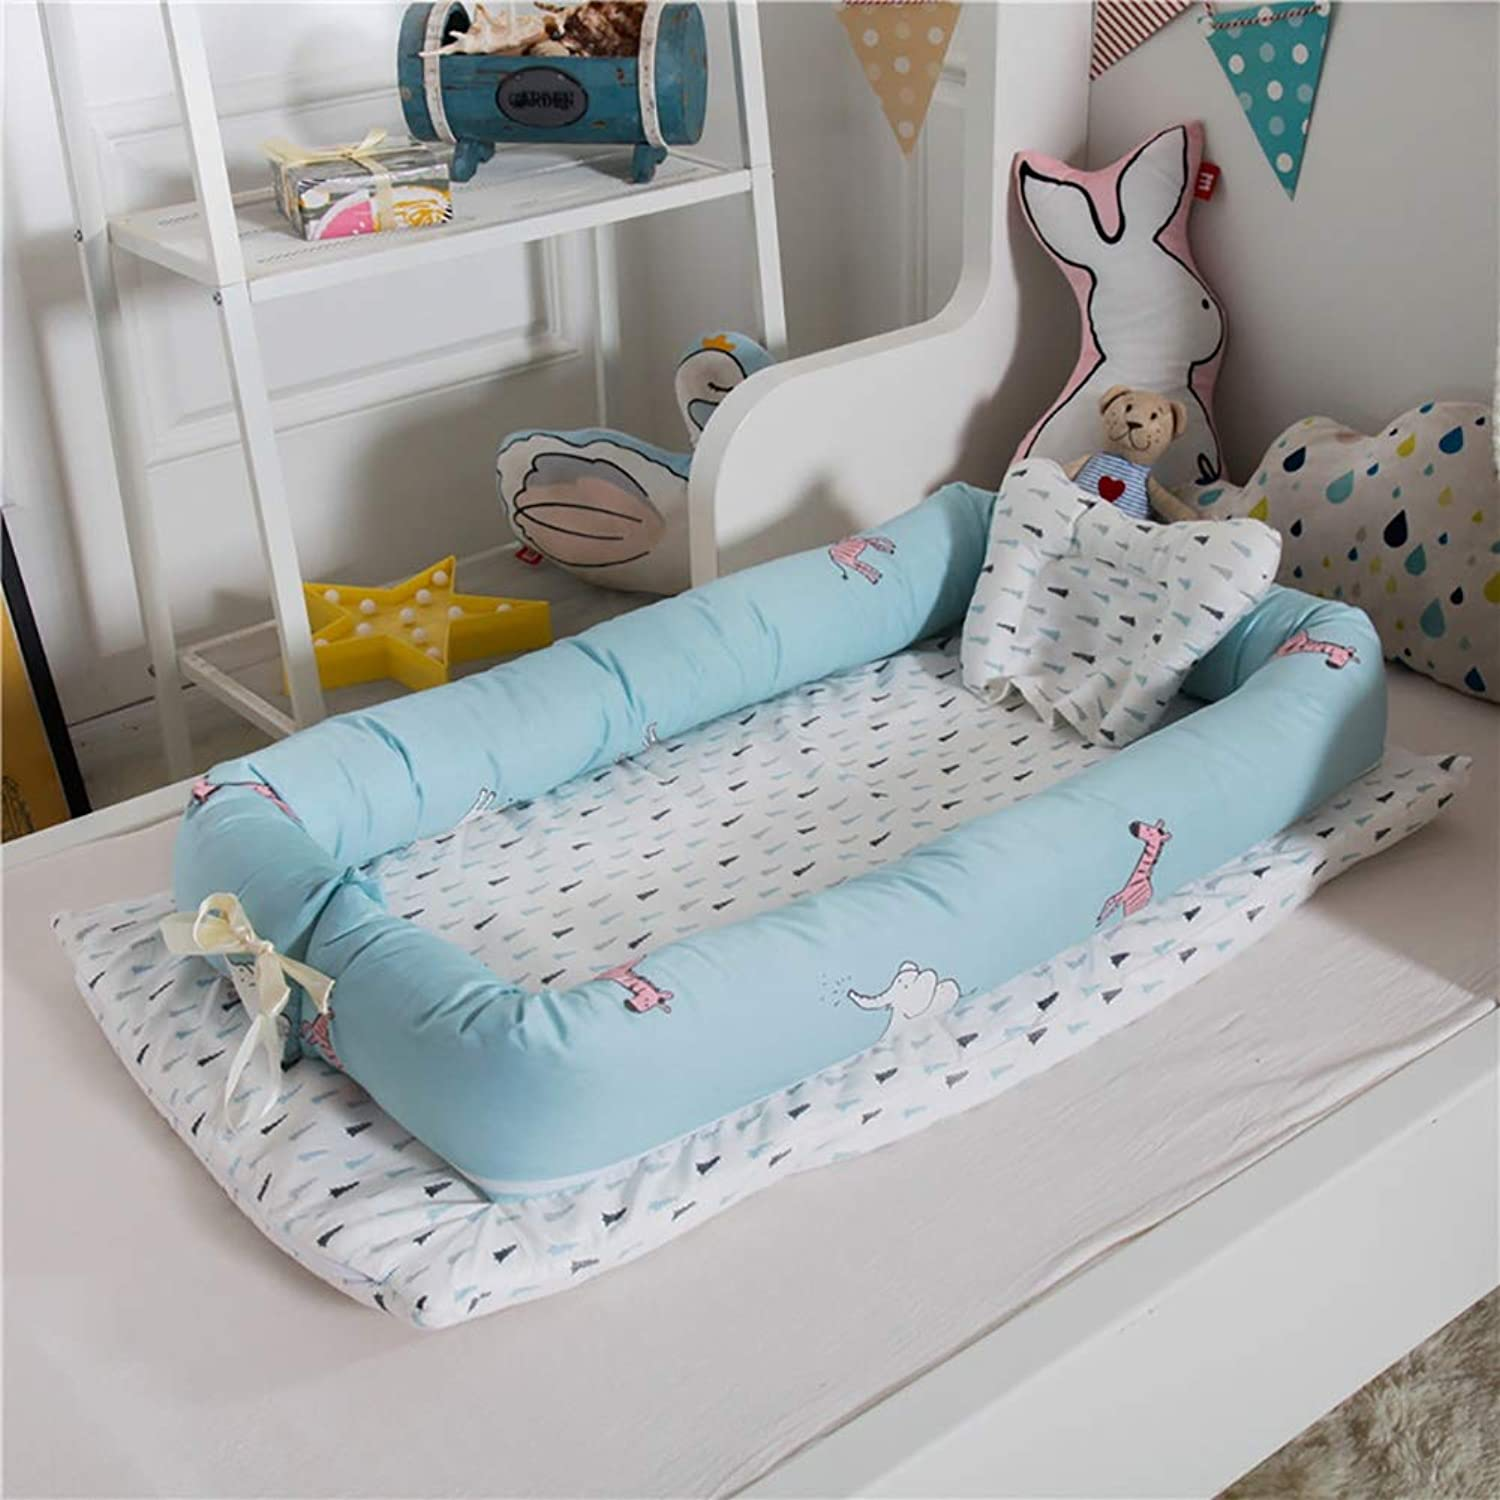 L L Baby Nest Crib Cotton Portable Newborn Isolated Bed Detachable Cover 90  55  15CM 35.4  21.7  5.9 inch, 15